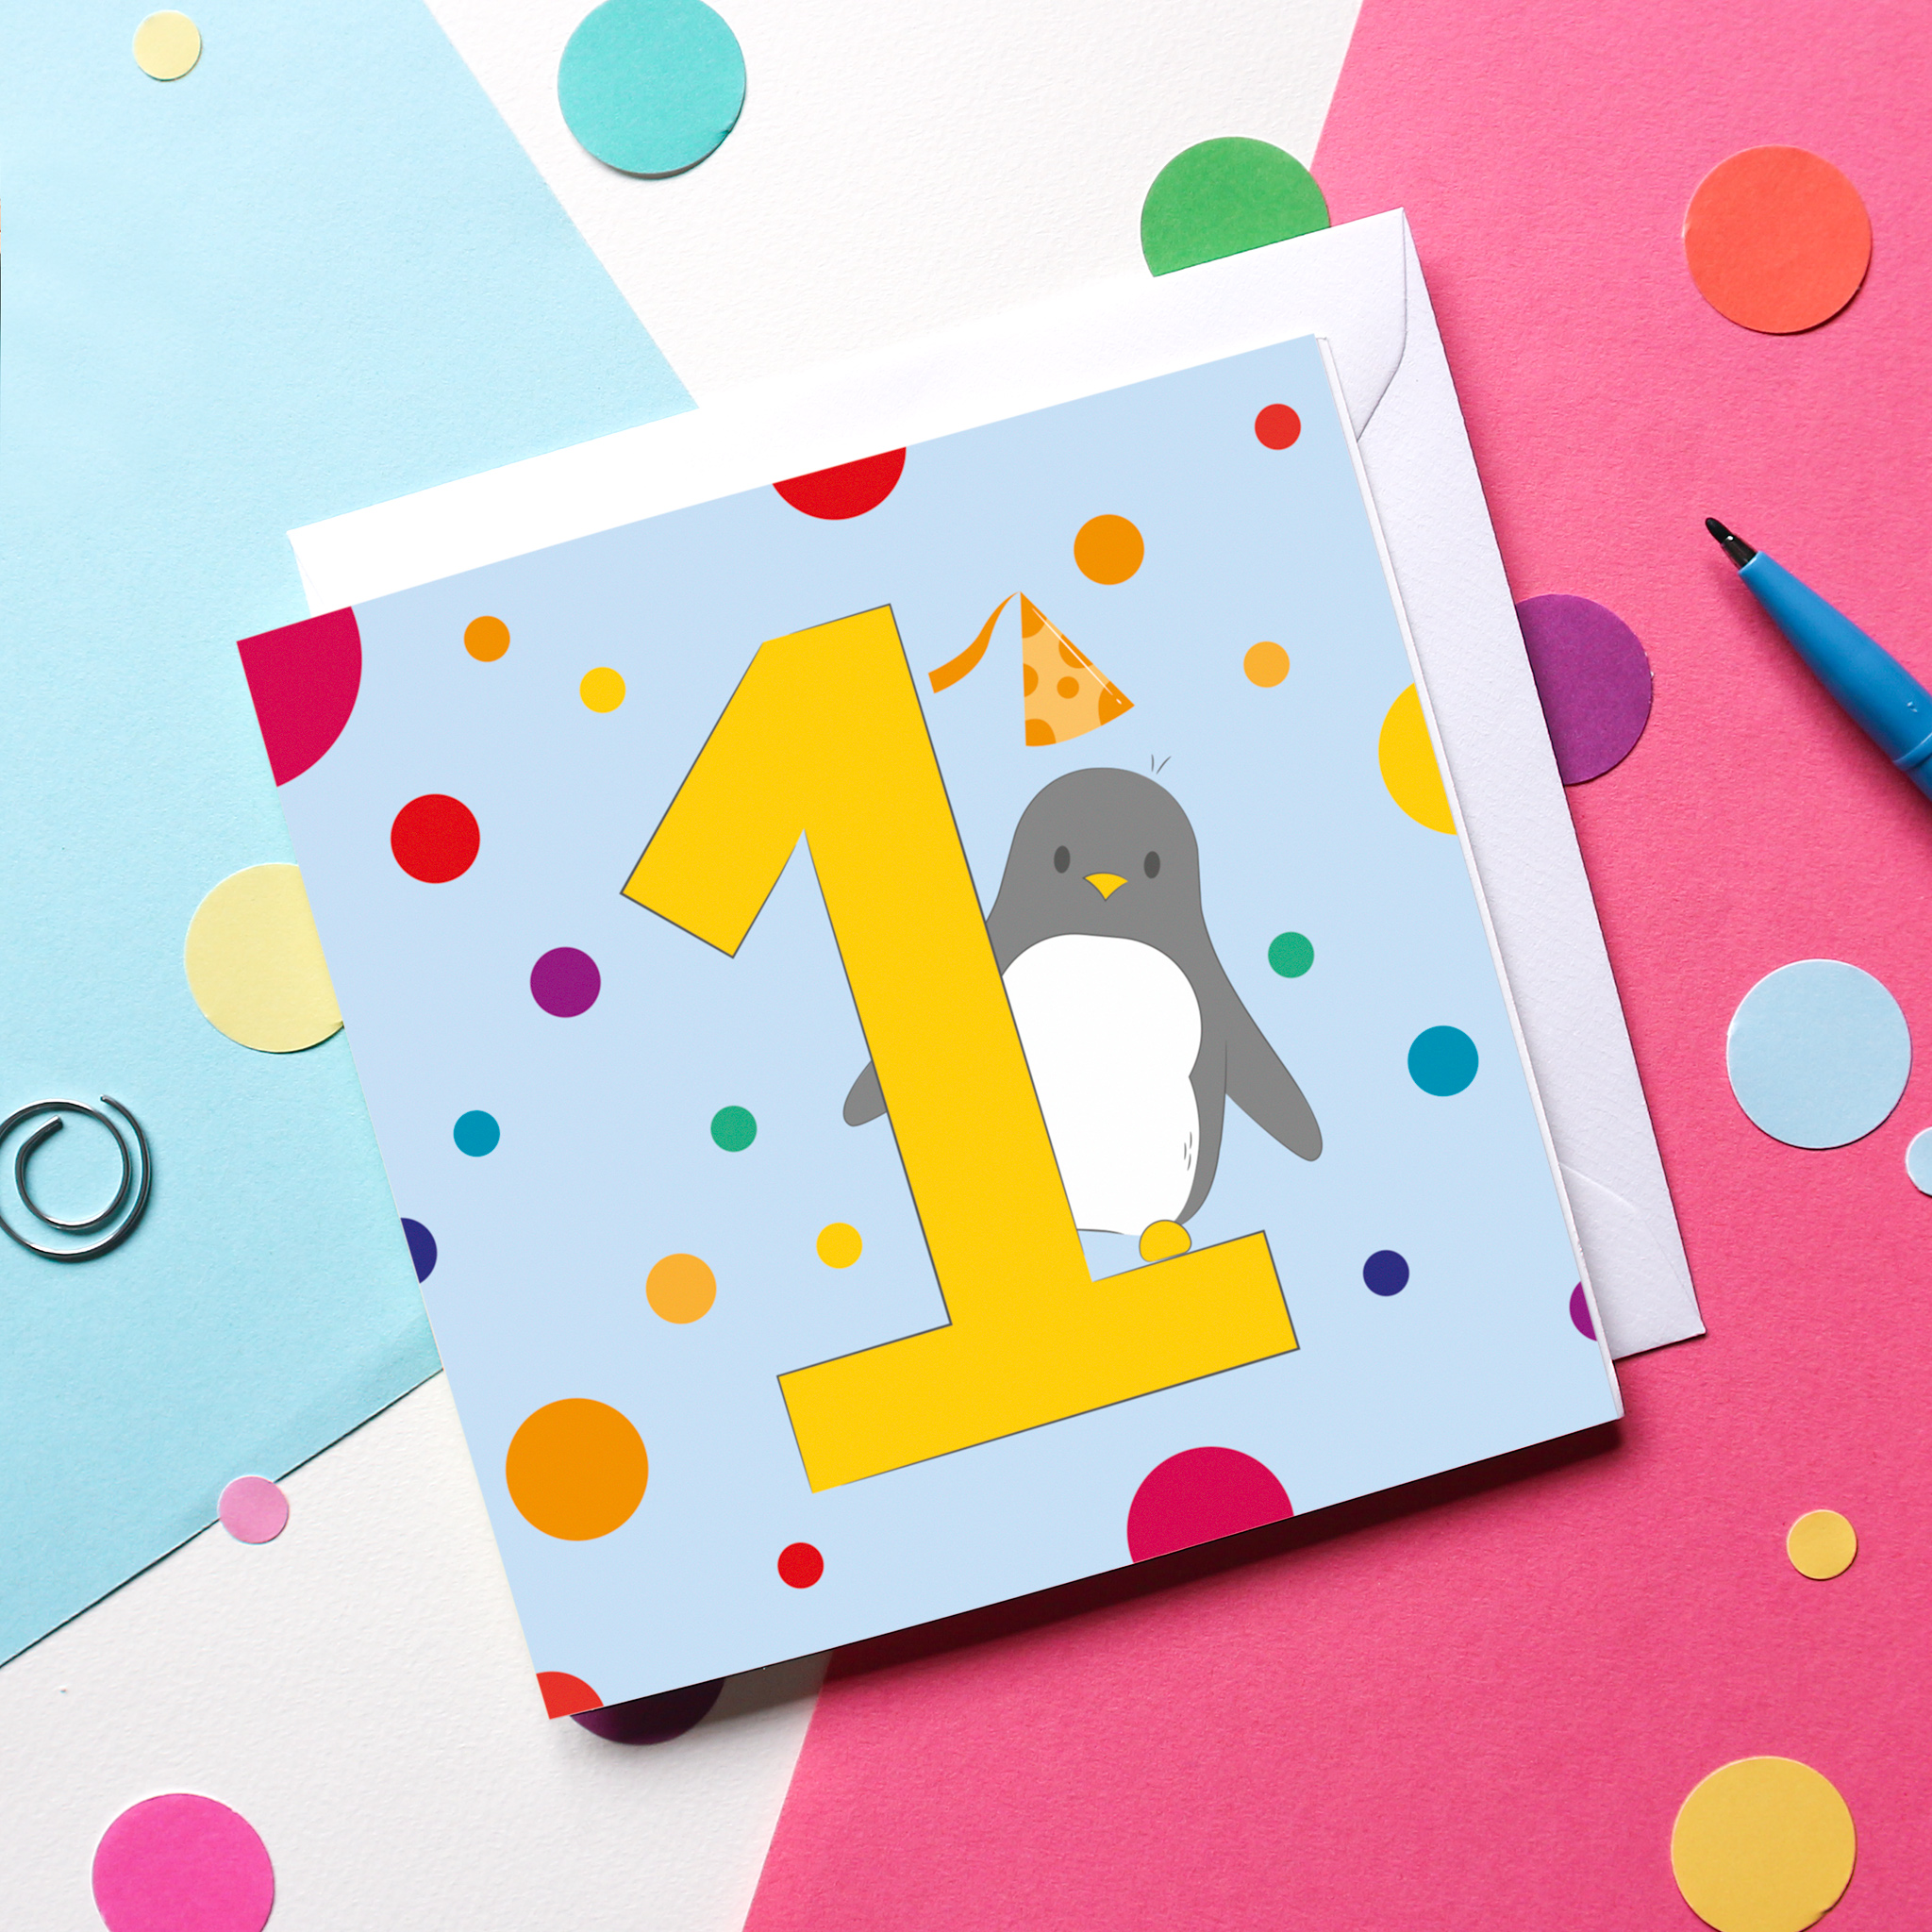 A Penguin-themed 1st Birthday Card on a colourful background surrounded by confetti and a pen.